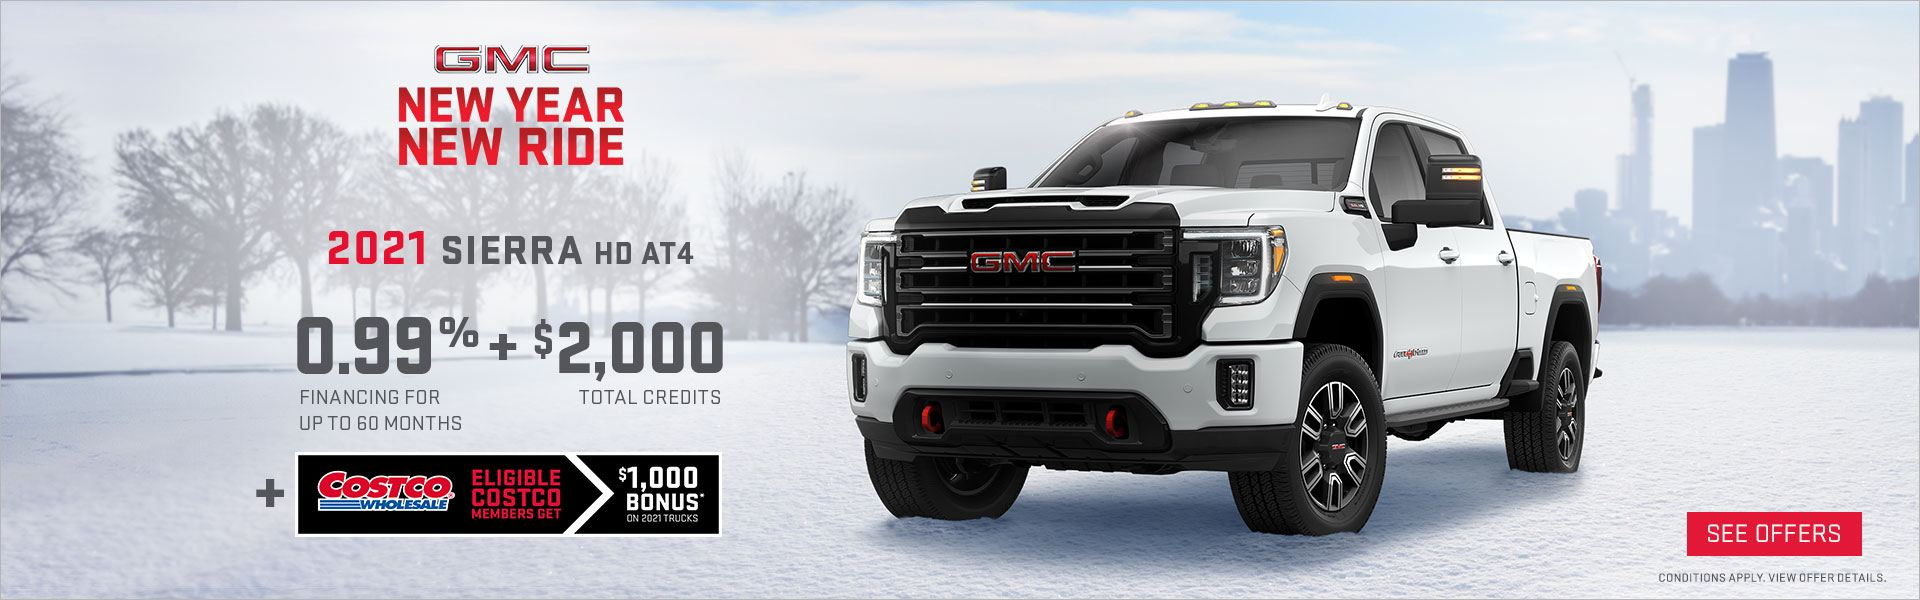 New Year New Ride GMC Sierra HD